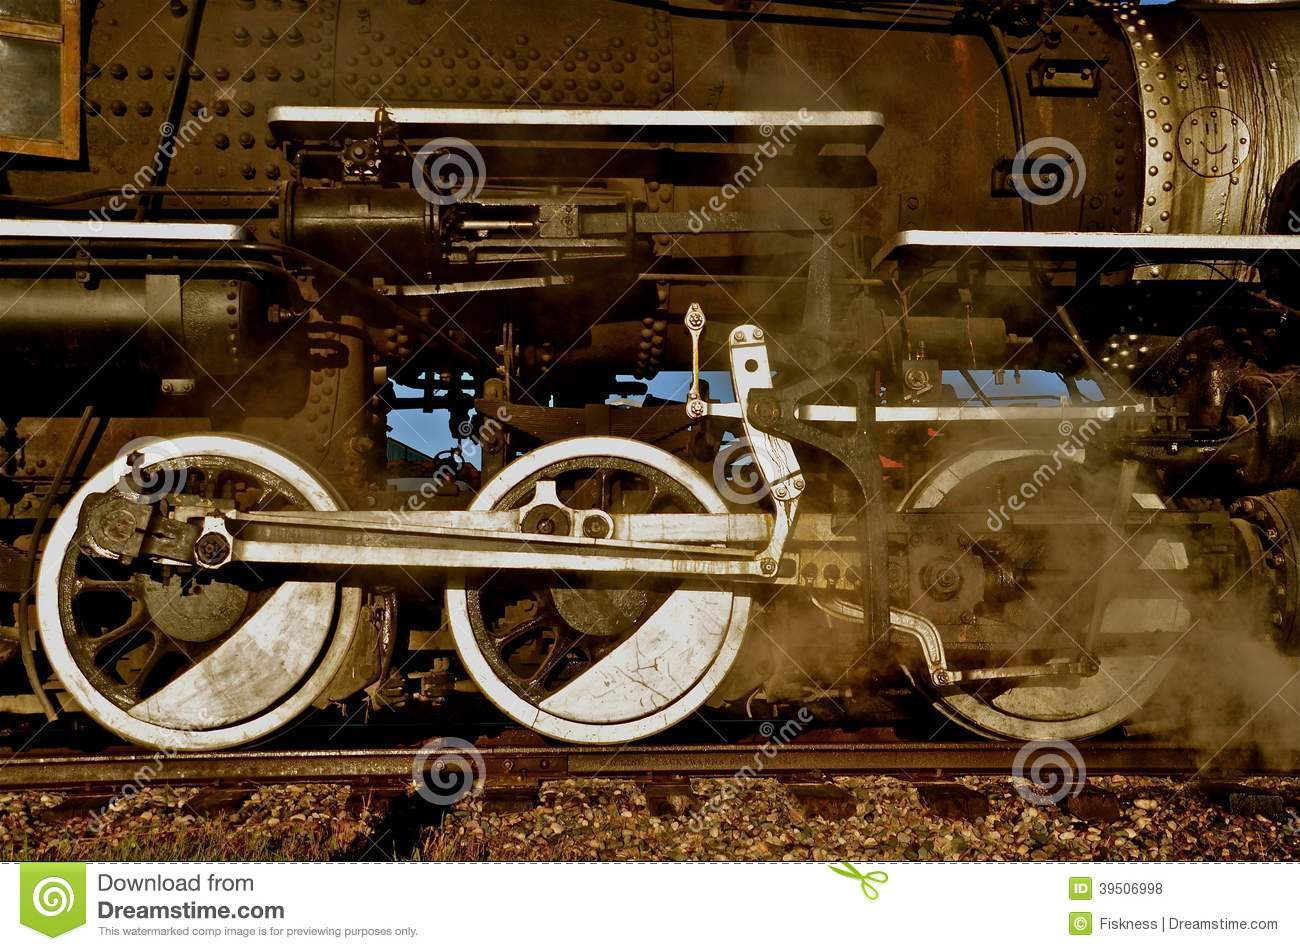 Locomotive blowing off steam